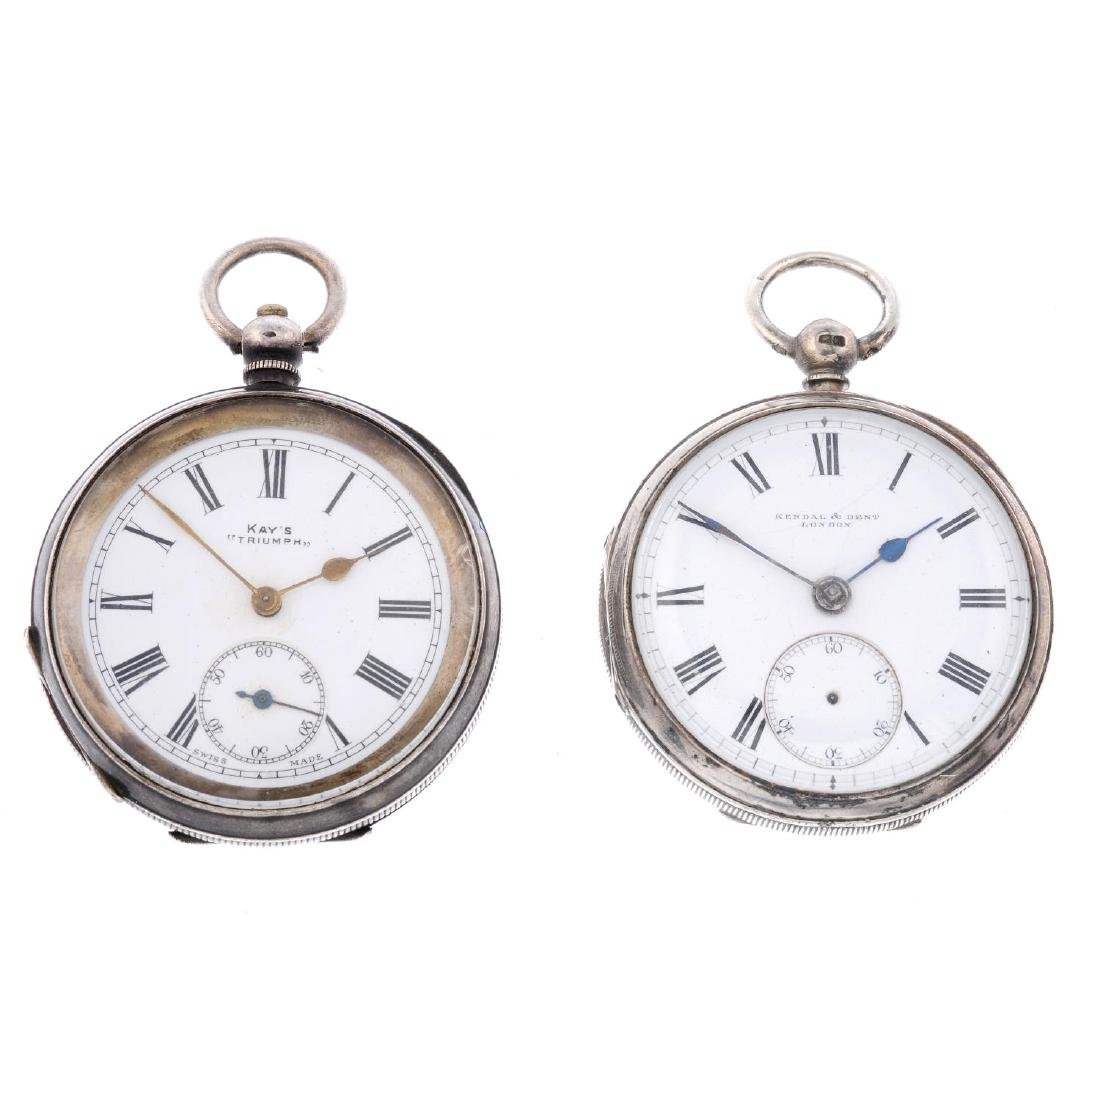 An open face pocket watch by Kay's. Silver case, import